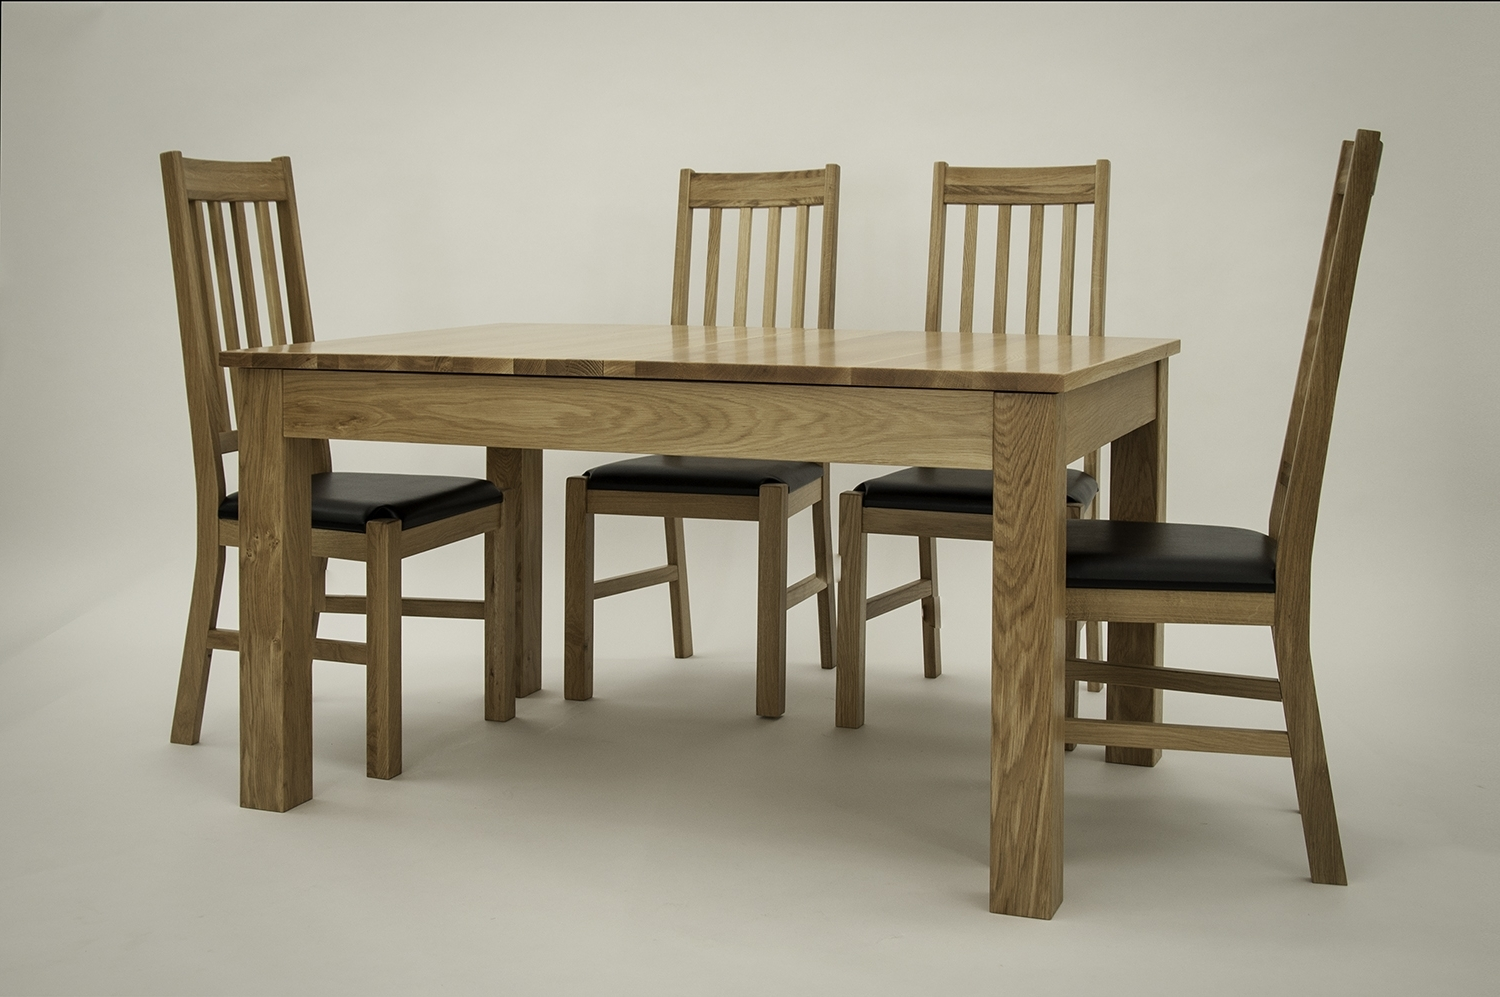 Extending Oak Dining Table Set With 6 Or 8 Chairs, Oak Extending Inside Popular Extending Dining Tables And 8 Chairs (View 23 of 25)